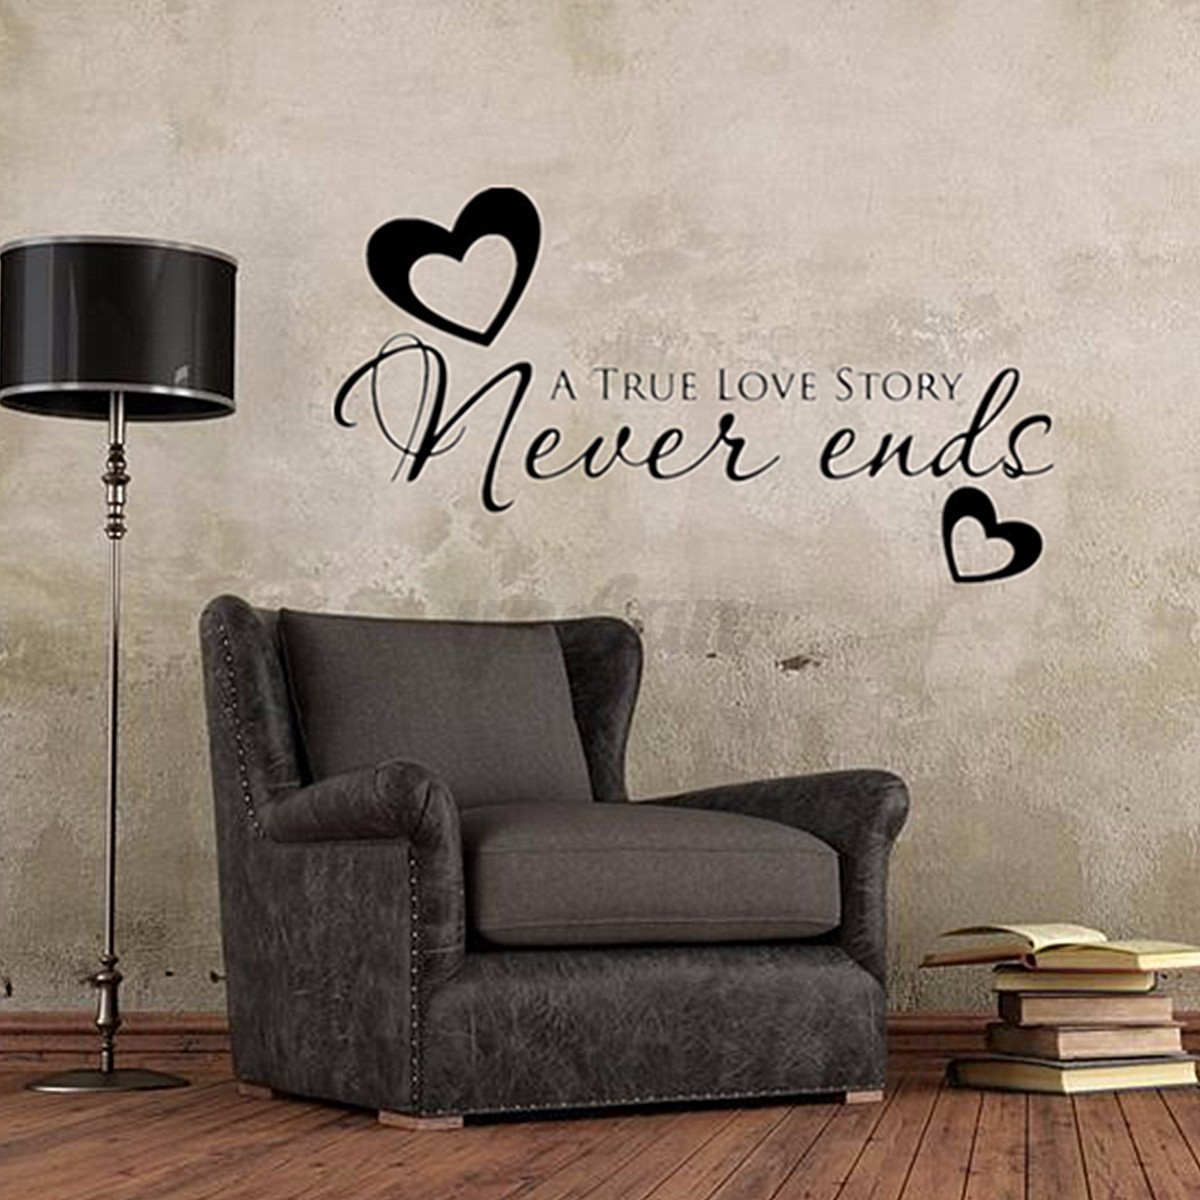 Family Wall Decor Diy : True love never ends heart wall stickers couple family